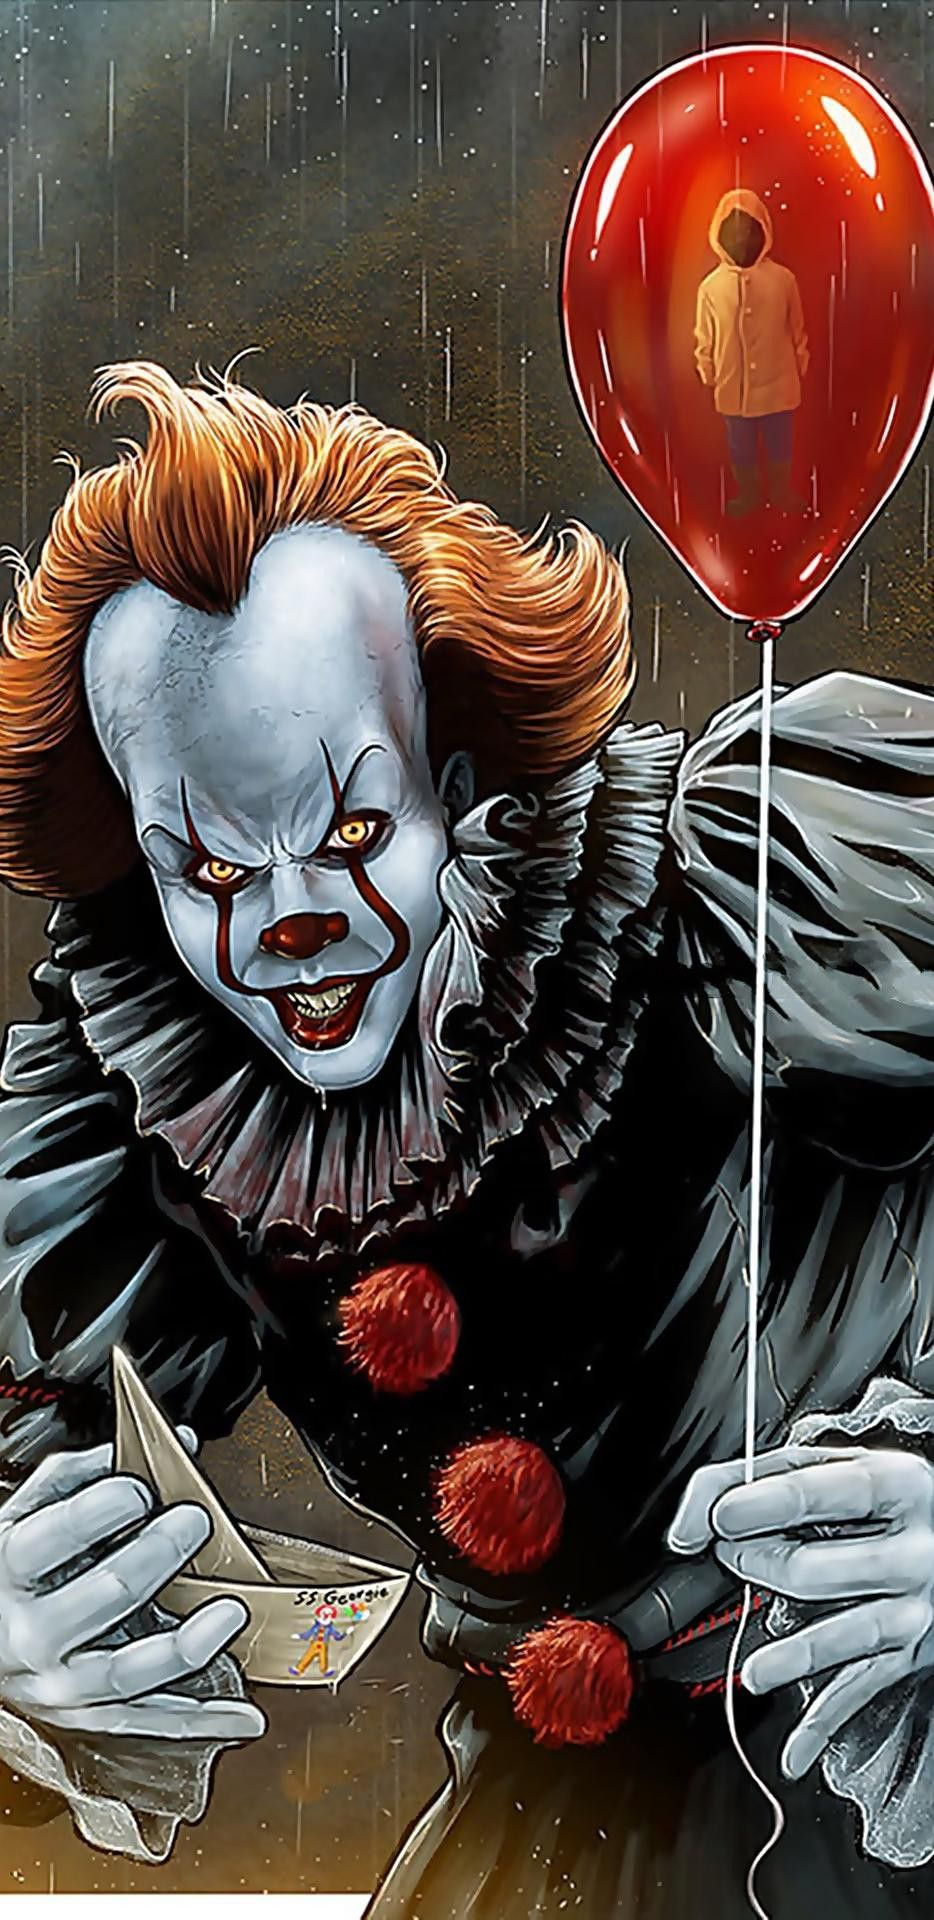 Pennywise Wallpaper Clown Horror Horror Movie Art Pennywise The Clown